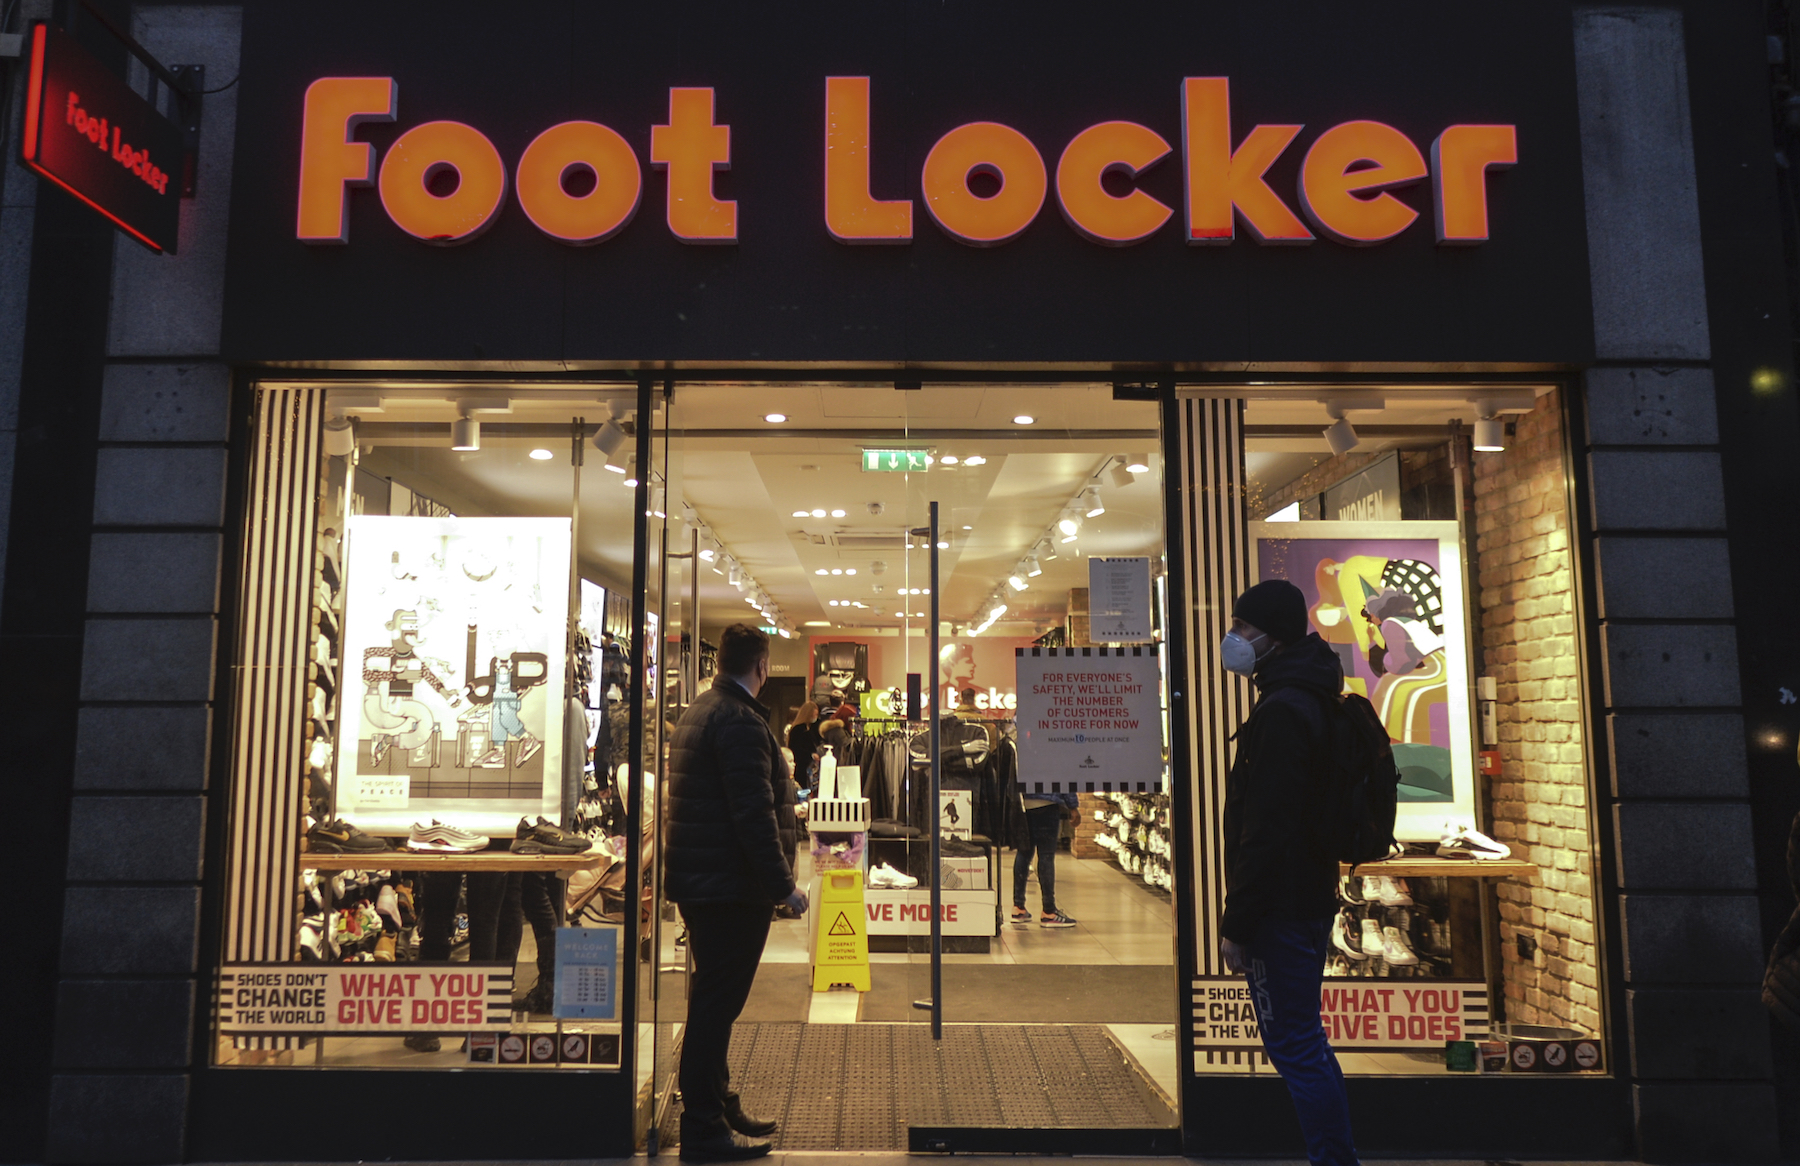 For nearly $1.1 billion in two all-cash purchases, two new retailers are now part of the Foot Locker ecosystem—Foot Locker acquired Atmos, a Japanese footwear retailer with 49 global stores, for $360 million, and scooped up WSS, a footwear and apparel retailer with 93 stores in the Southwestern U.S., for $750 million.